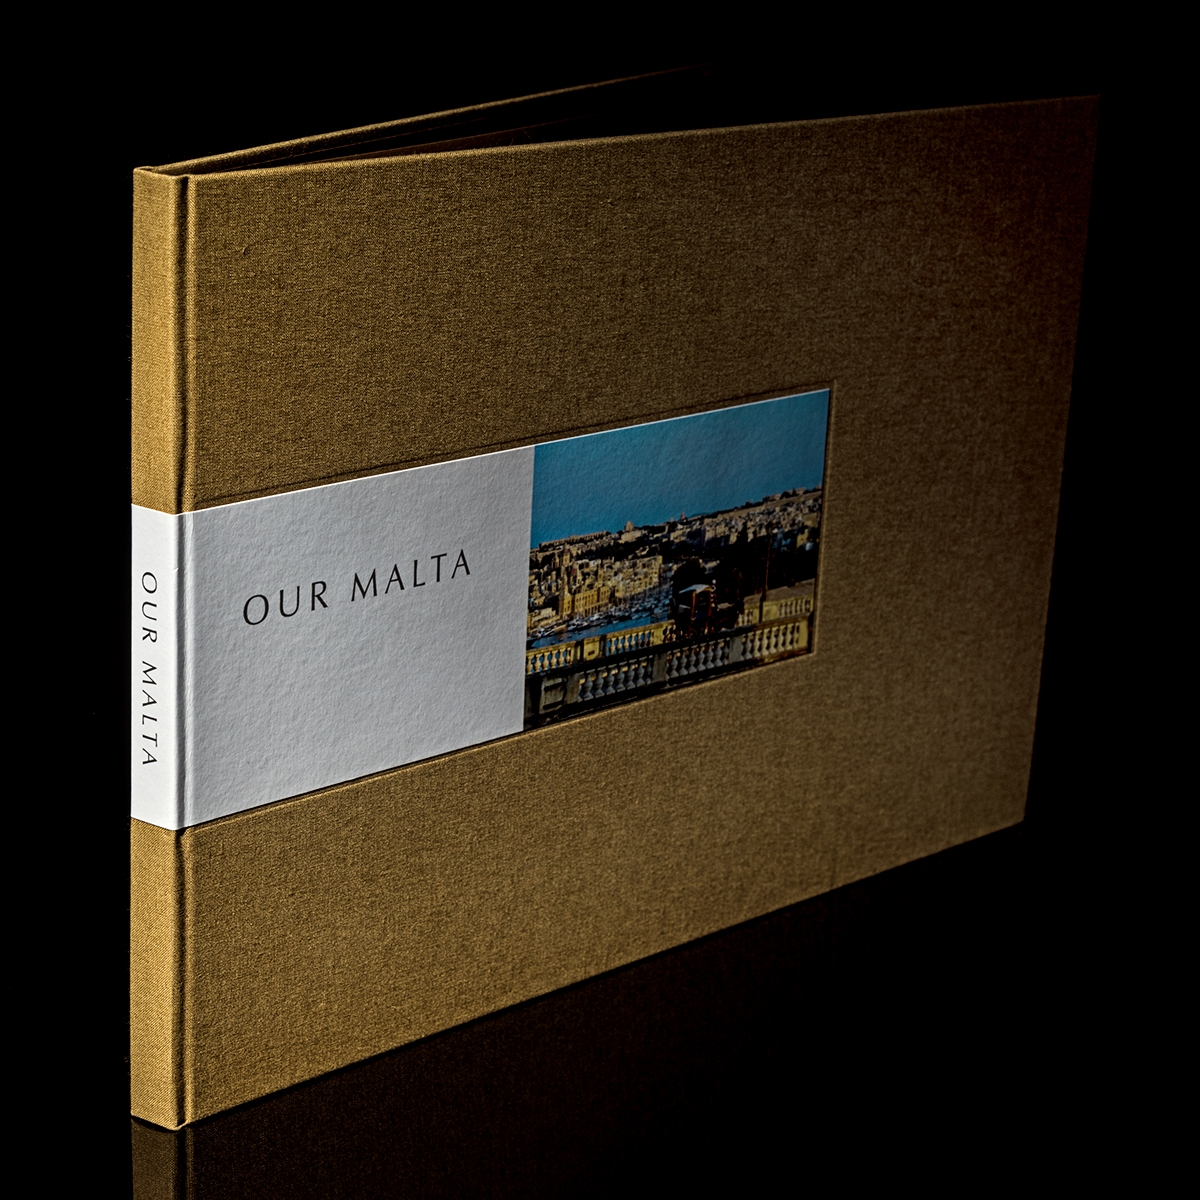 'Our Malta' Case Study